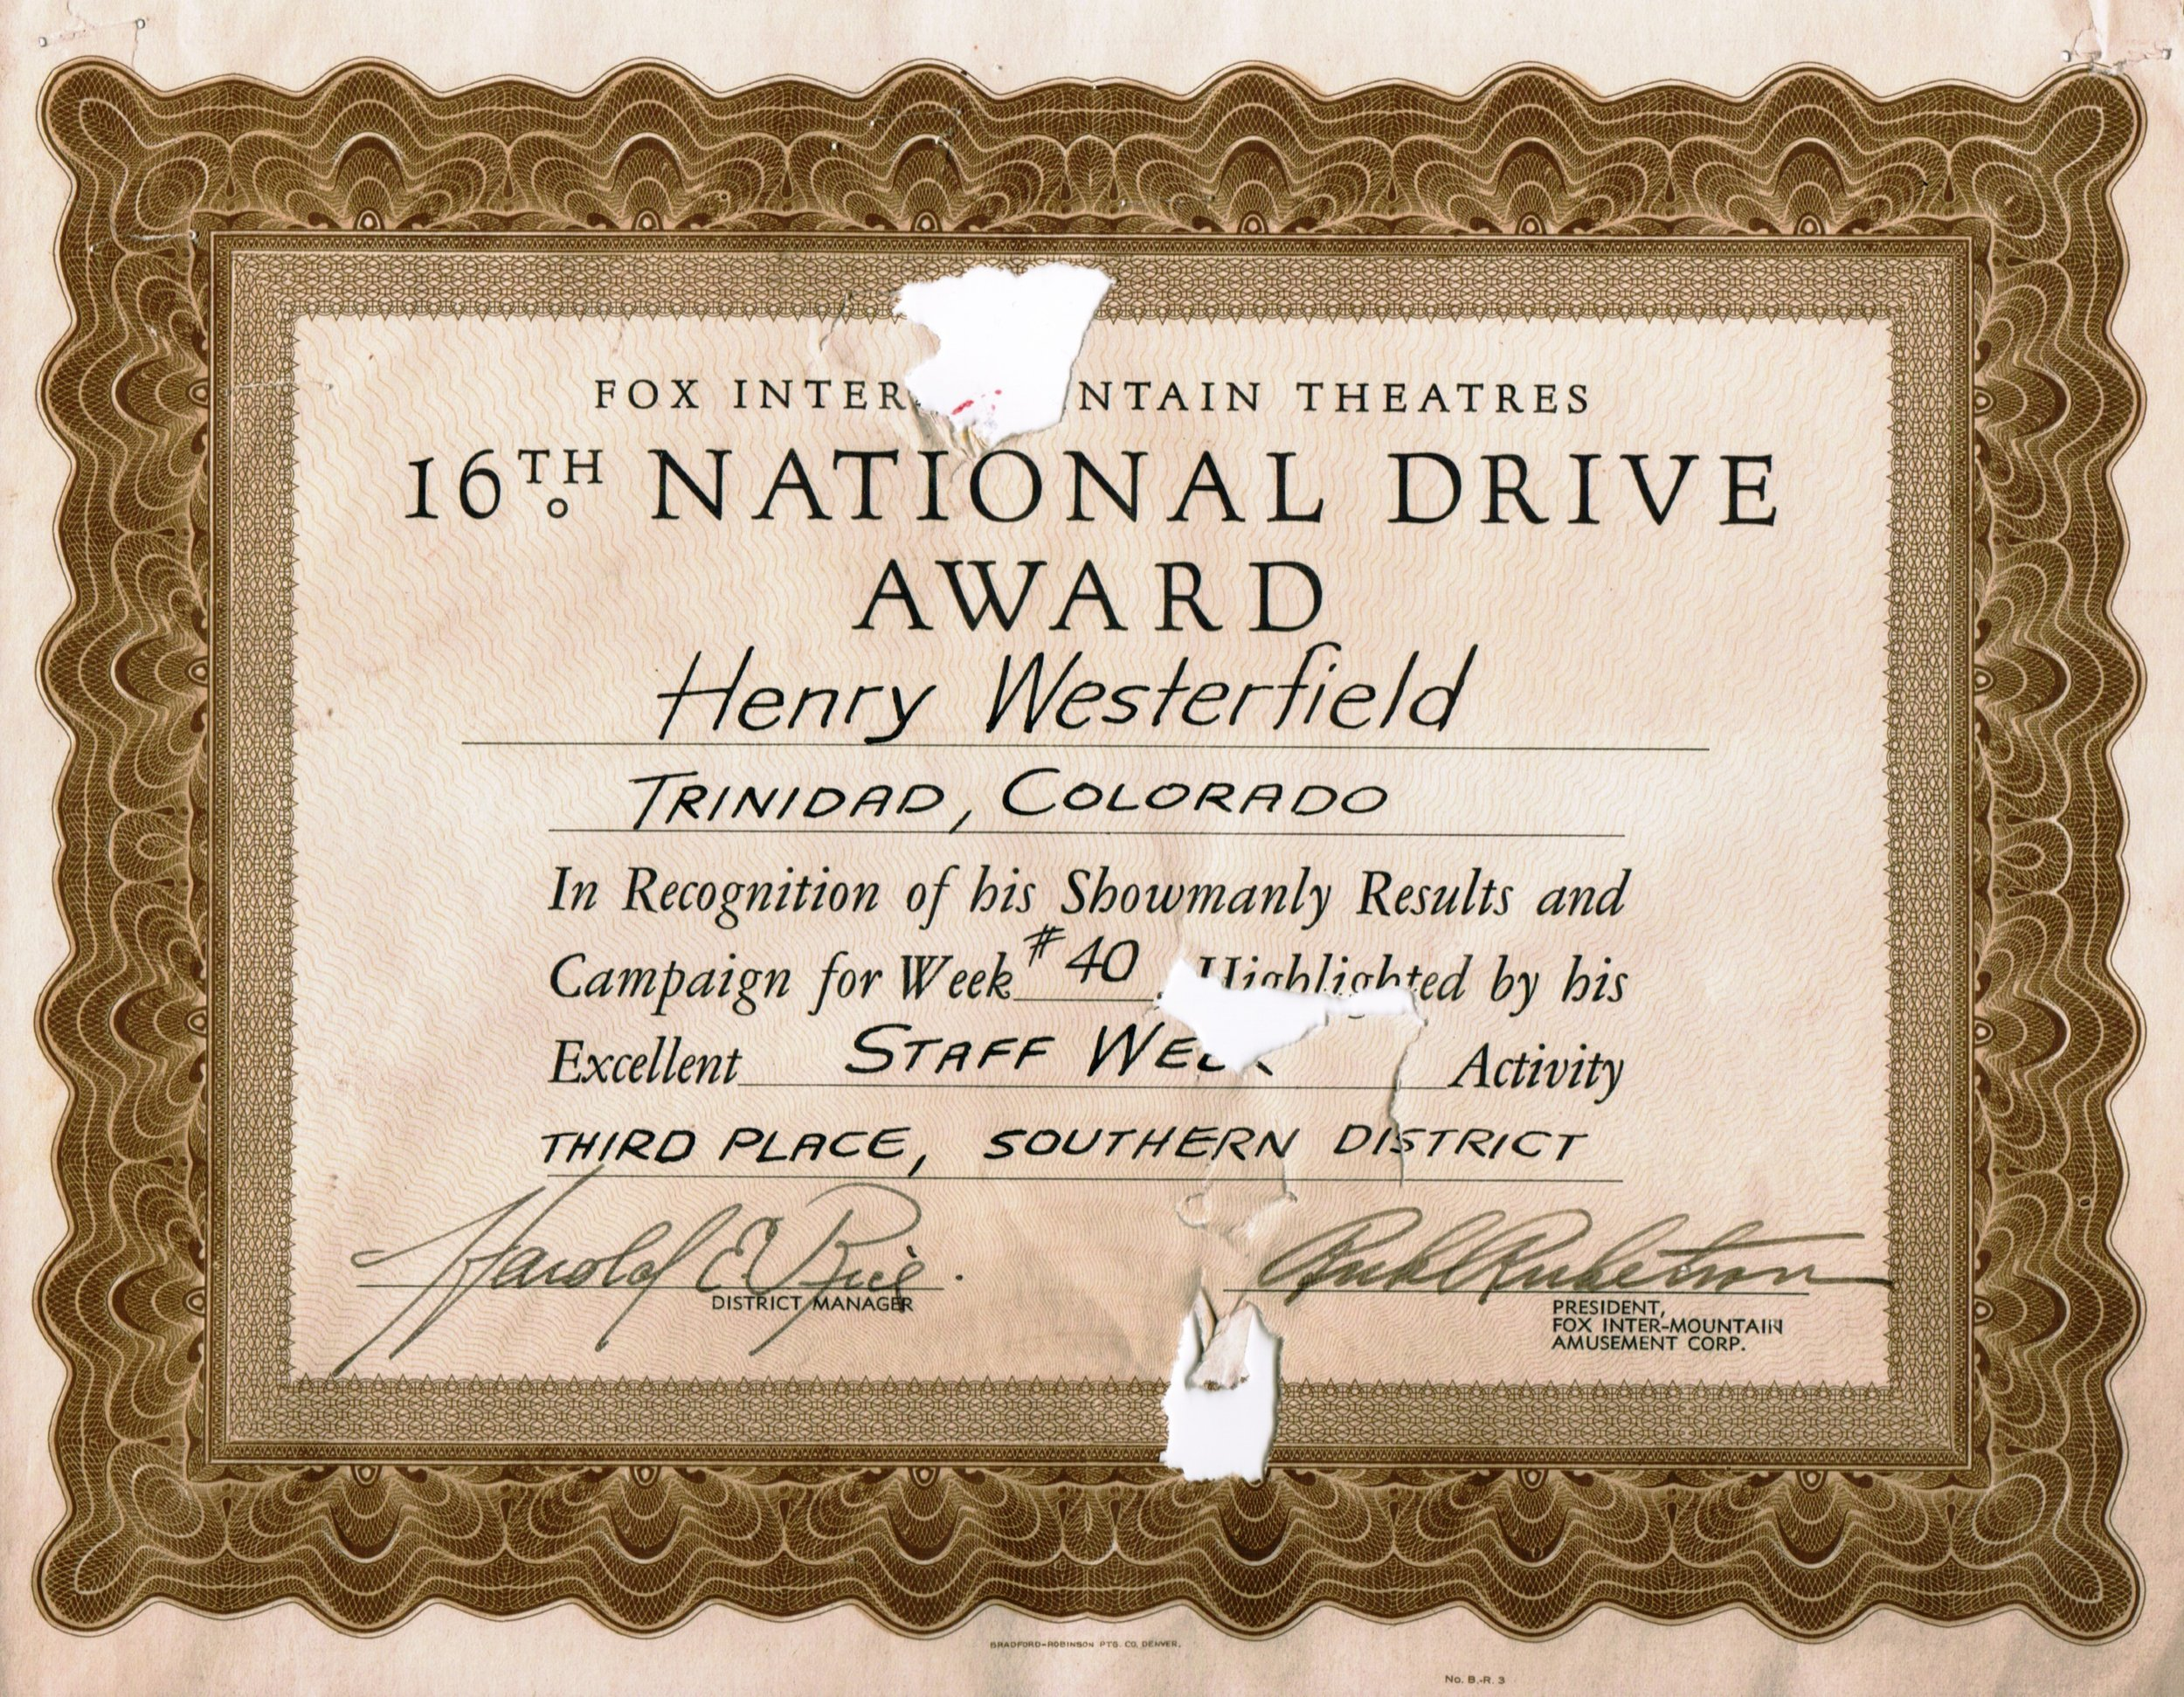 Henry Westerfield - Served as manager of the Fox (West) twice: upon its sale to Fox-Intermountain in 1929, and again in the late 1940s. This certificate was located on the back of an office door.